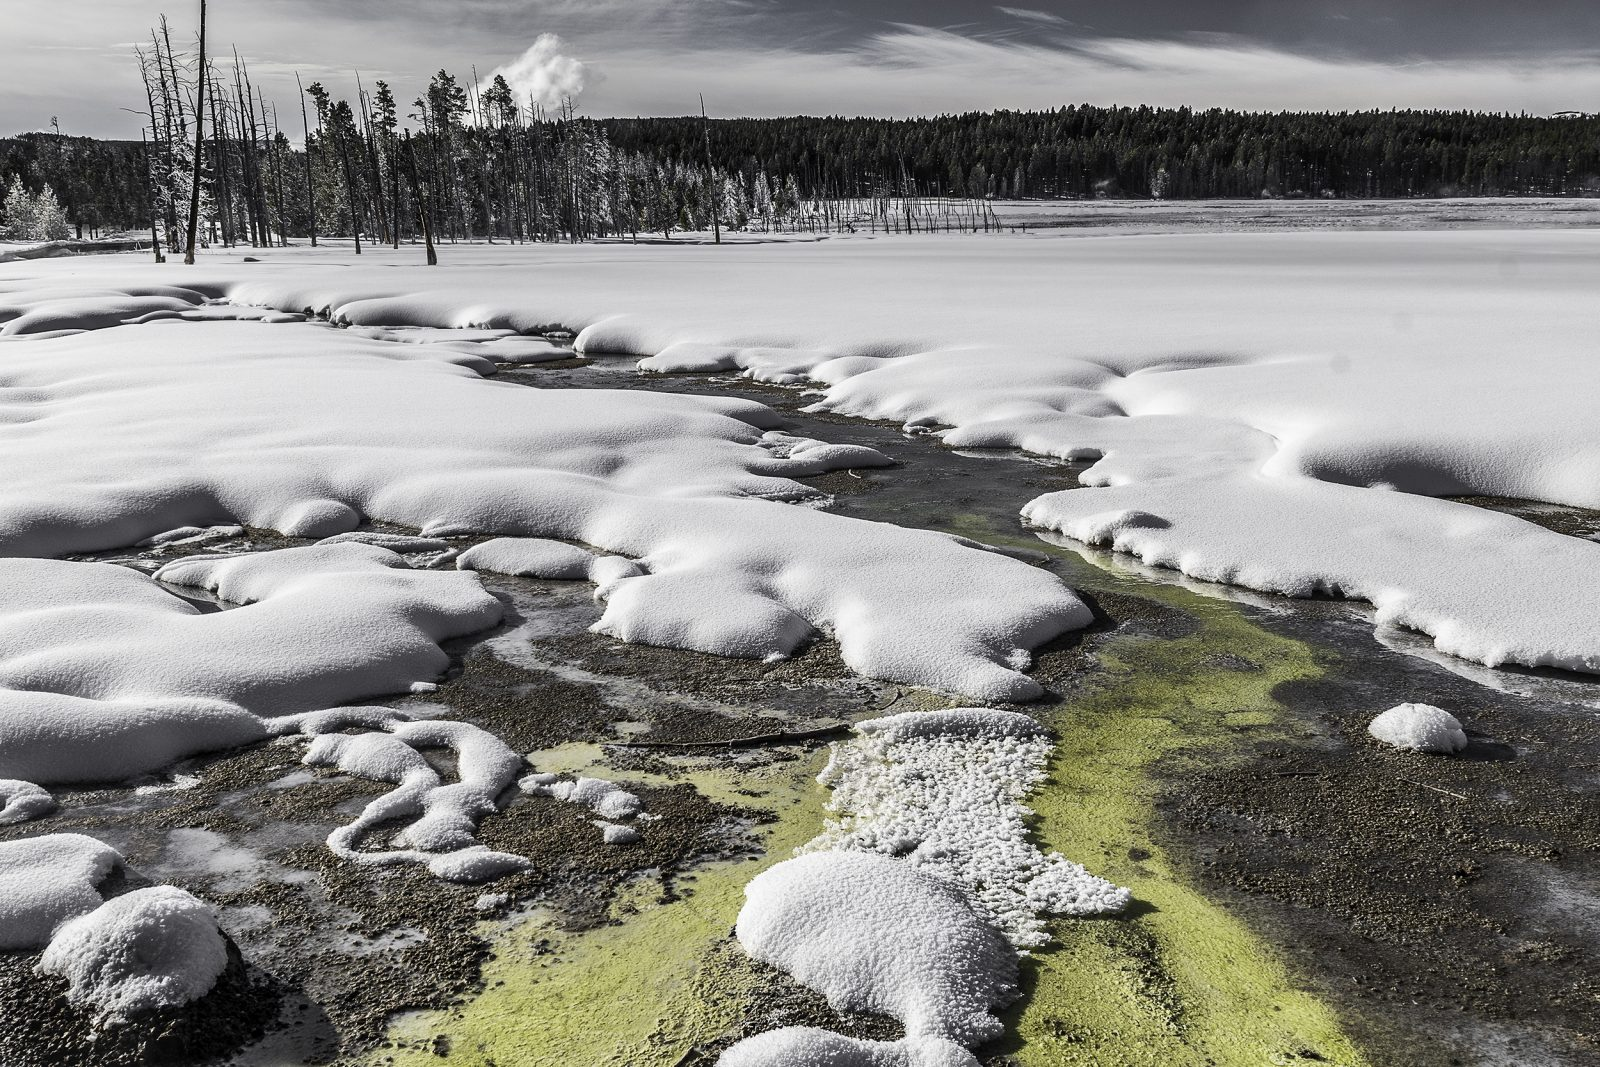 Carpet of Snow at the Lower Geyser Basin, Yellowstone